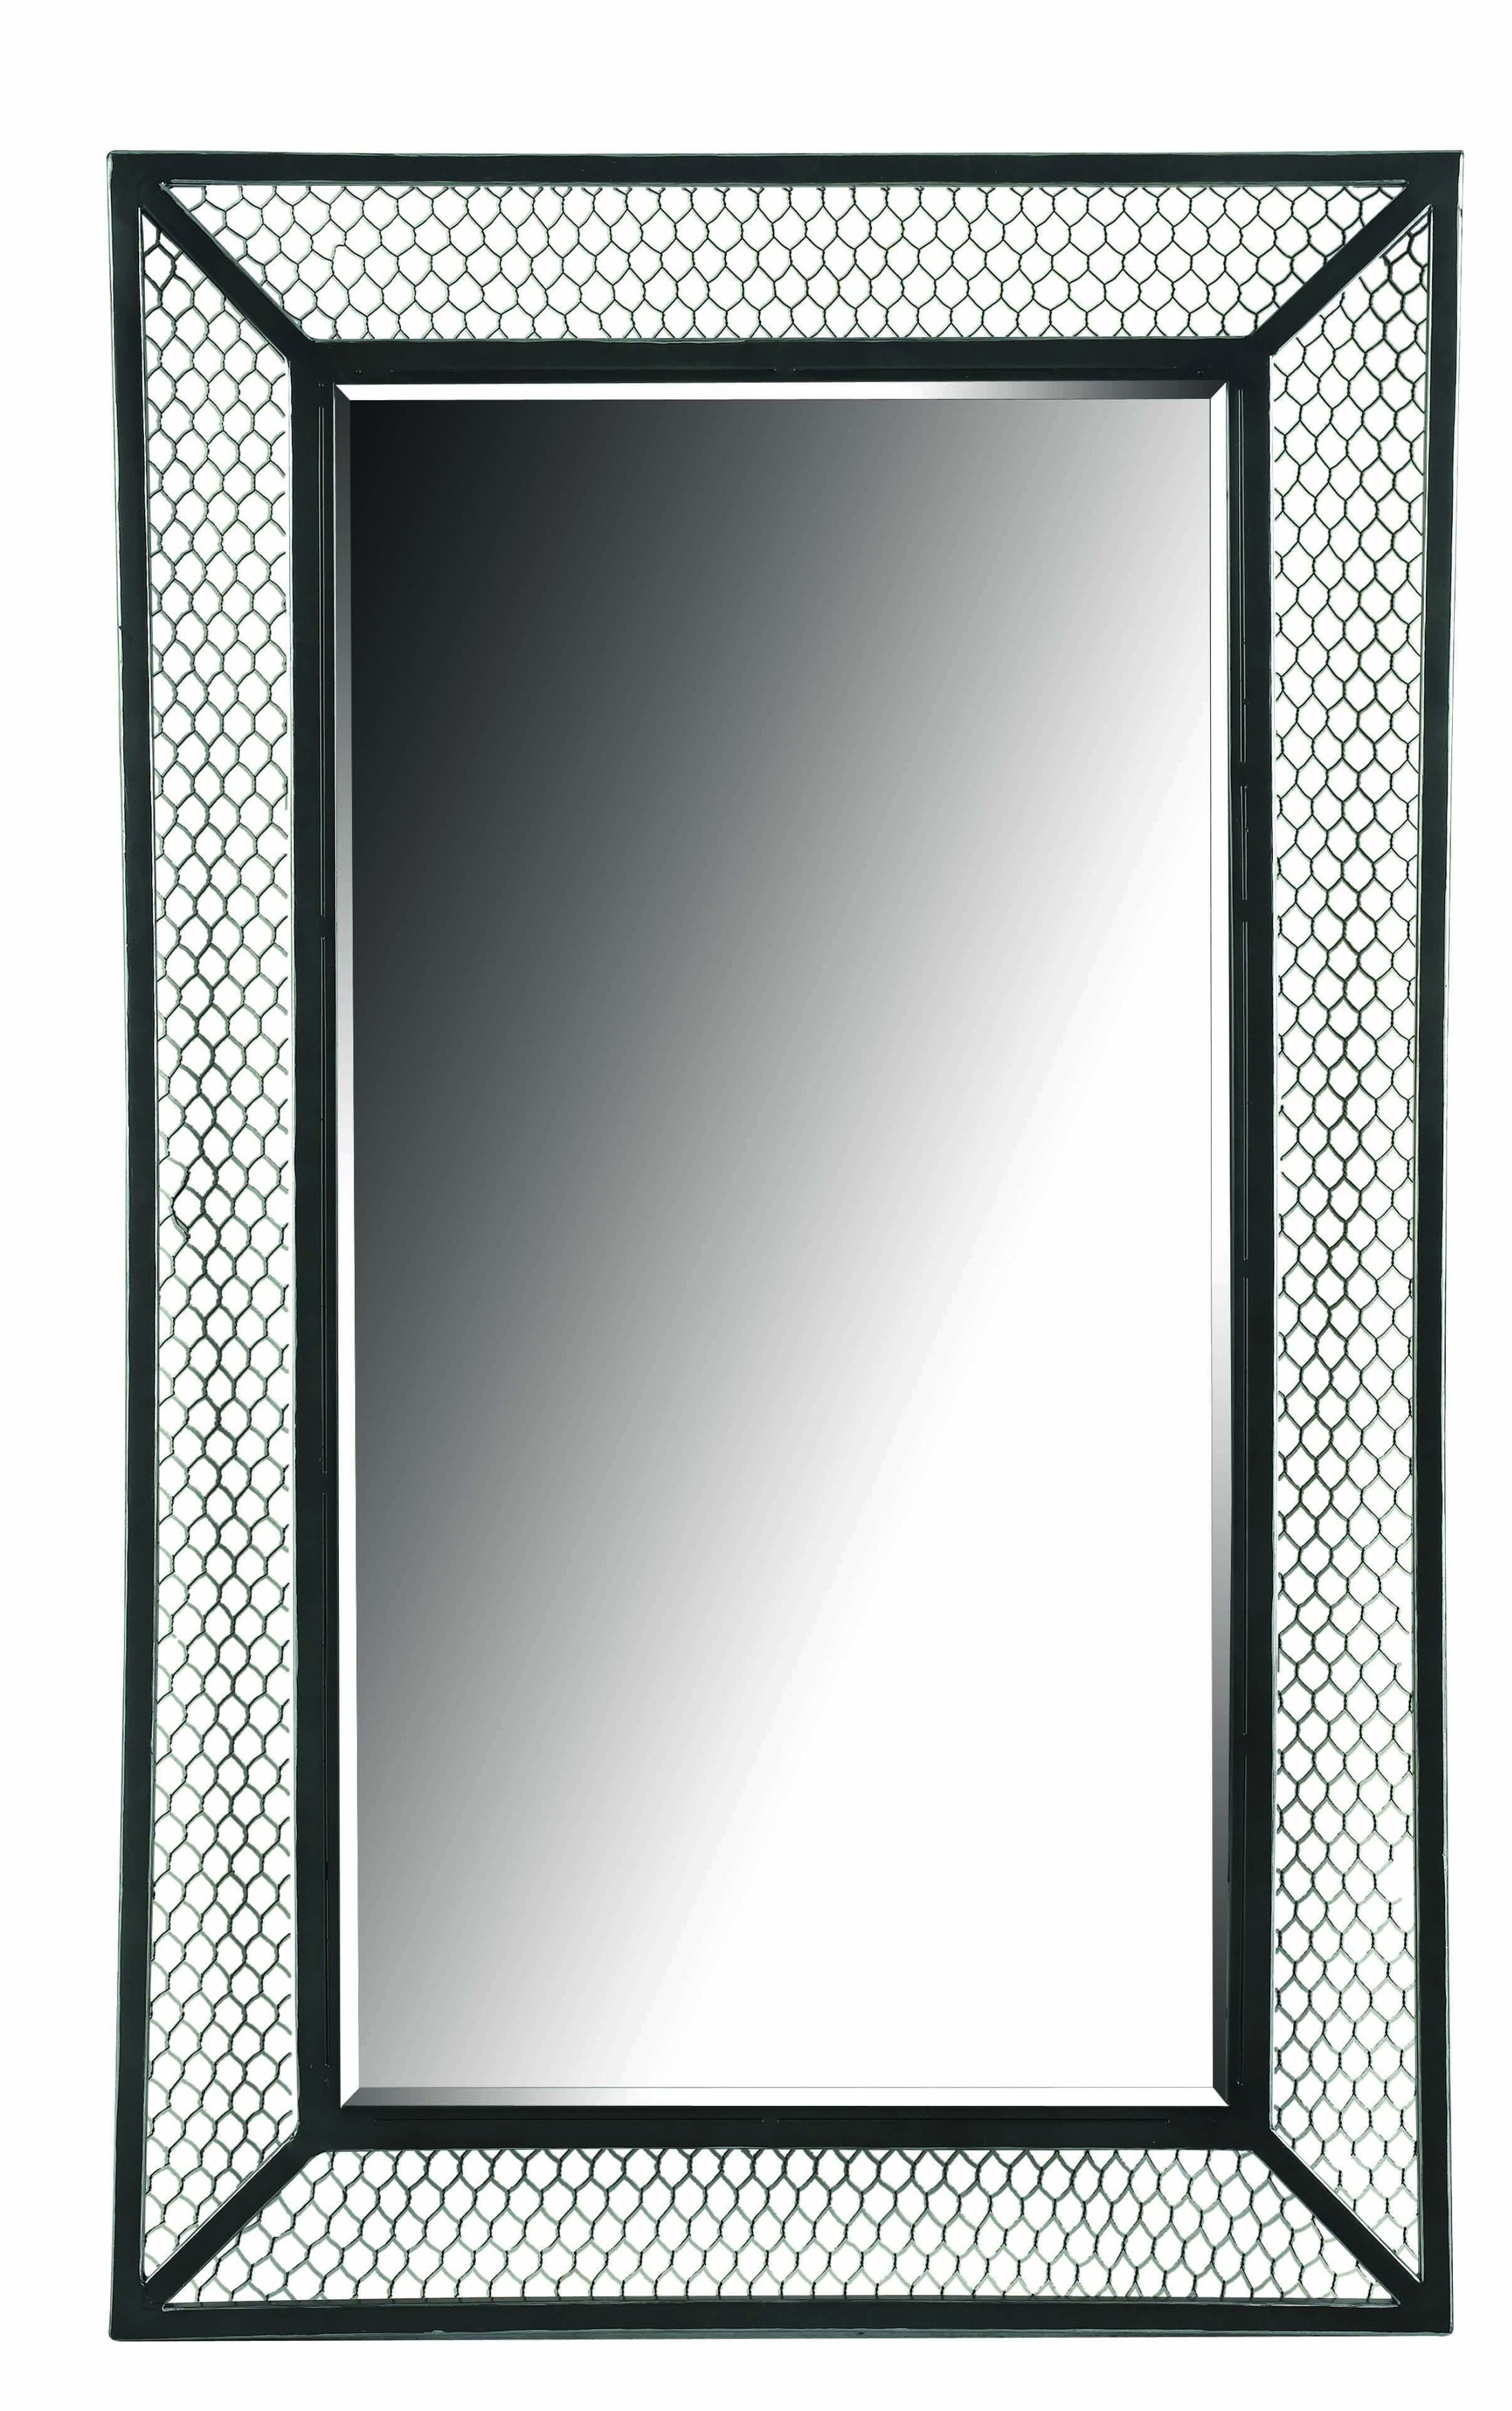 'Cozy' Black/ Silver Wall Mirror